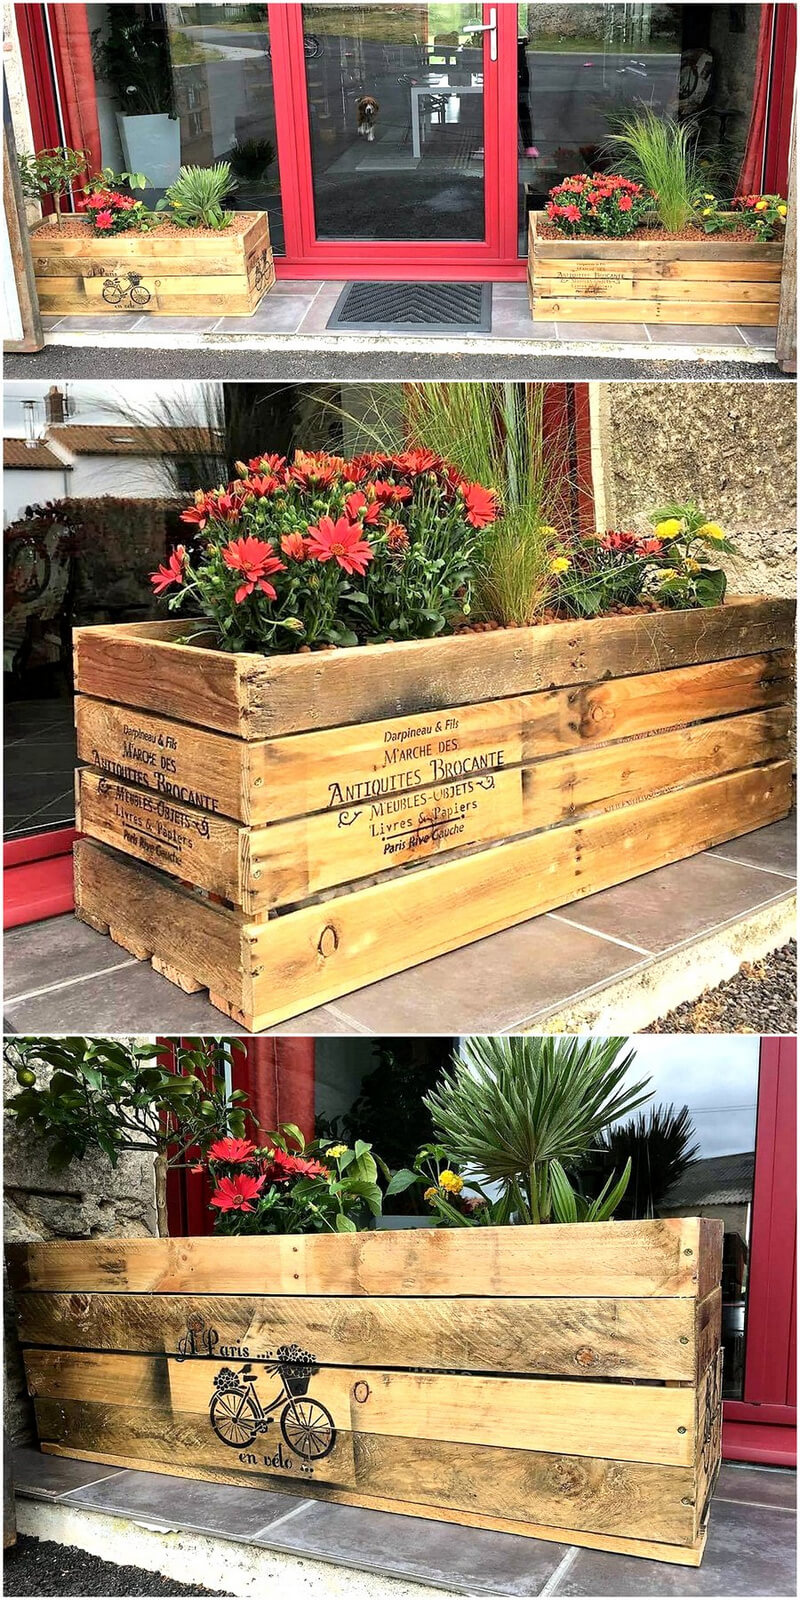 Awesome pallet ideas you can do it yourself at home for Making planters from pallets